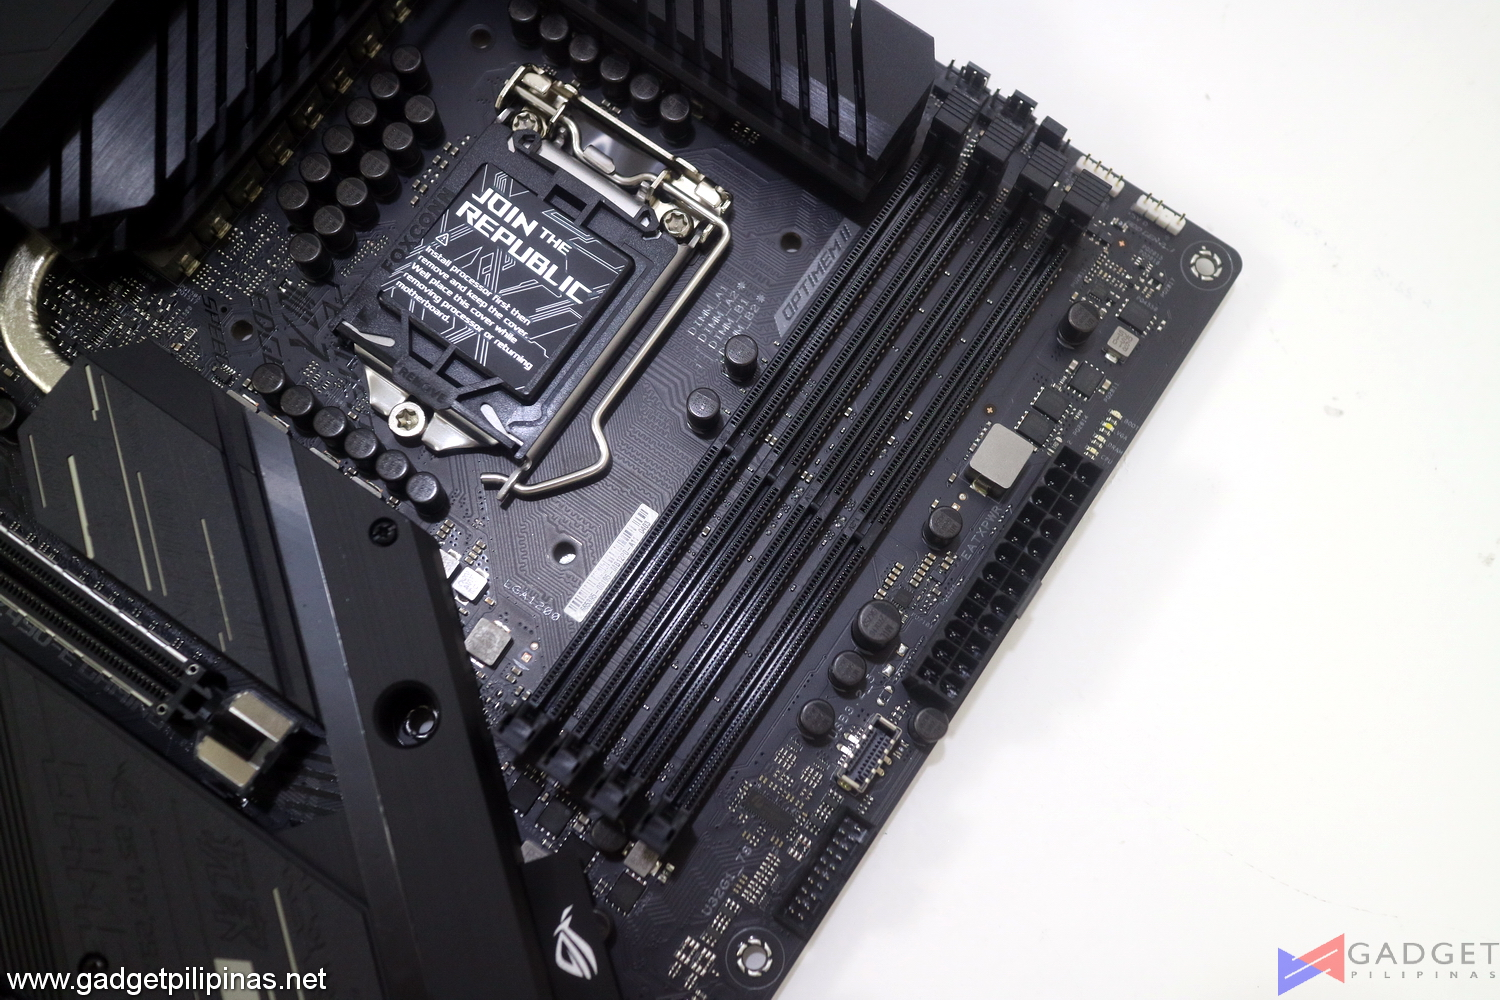 ASUS ROG Strix Z490-E Gaming Motherboard Initial Review - Daisy chain